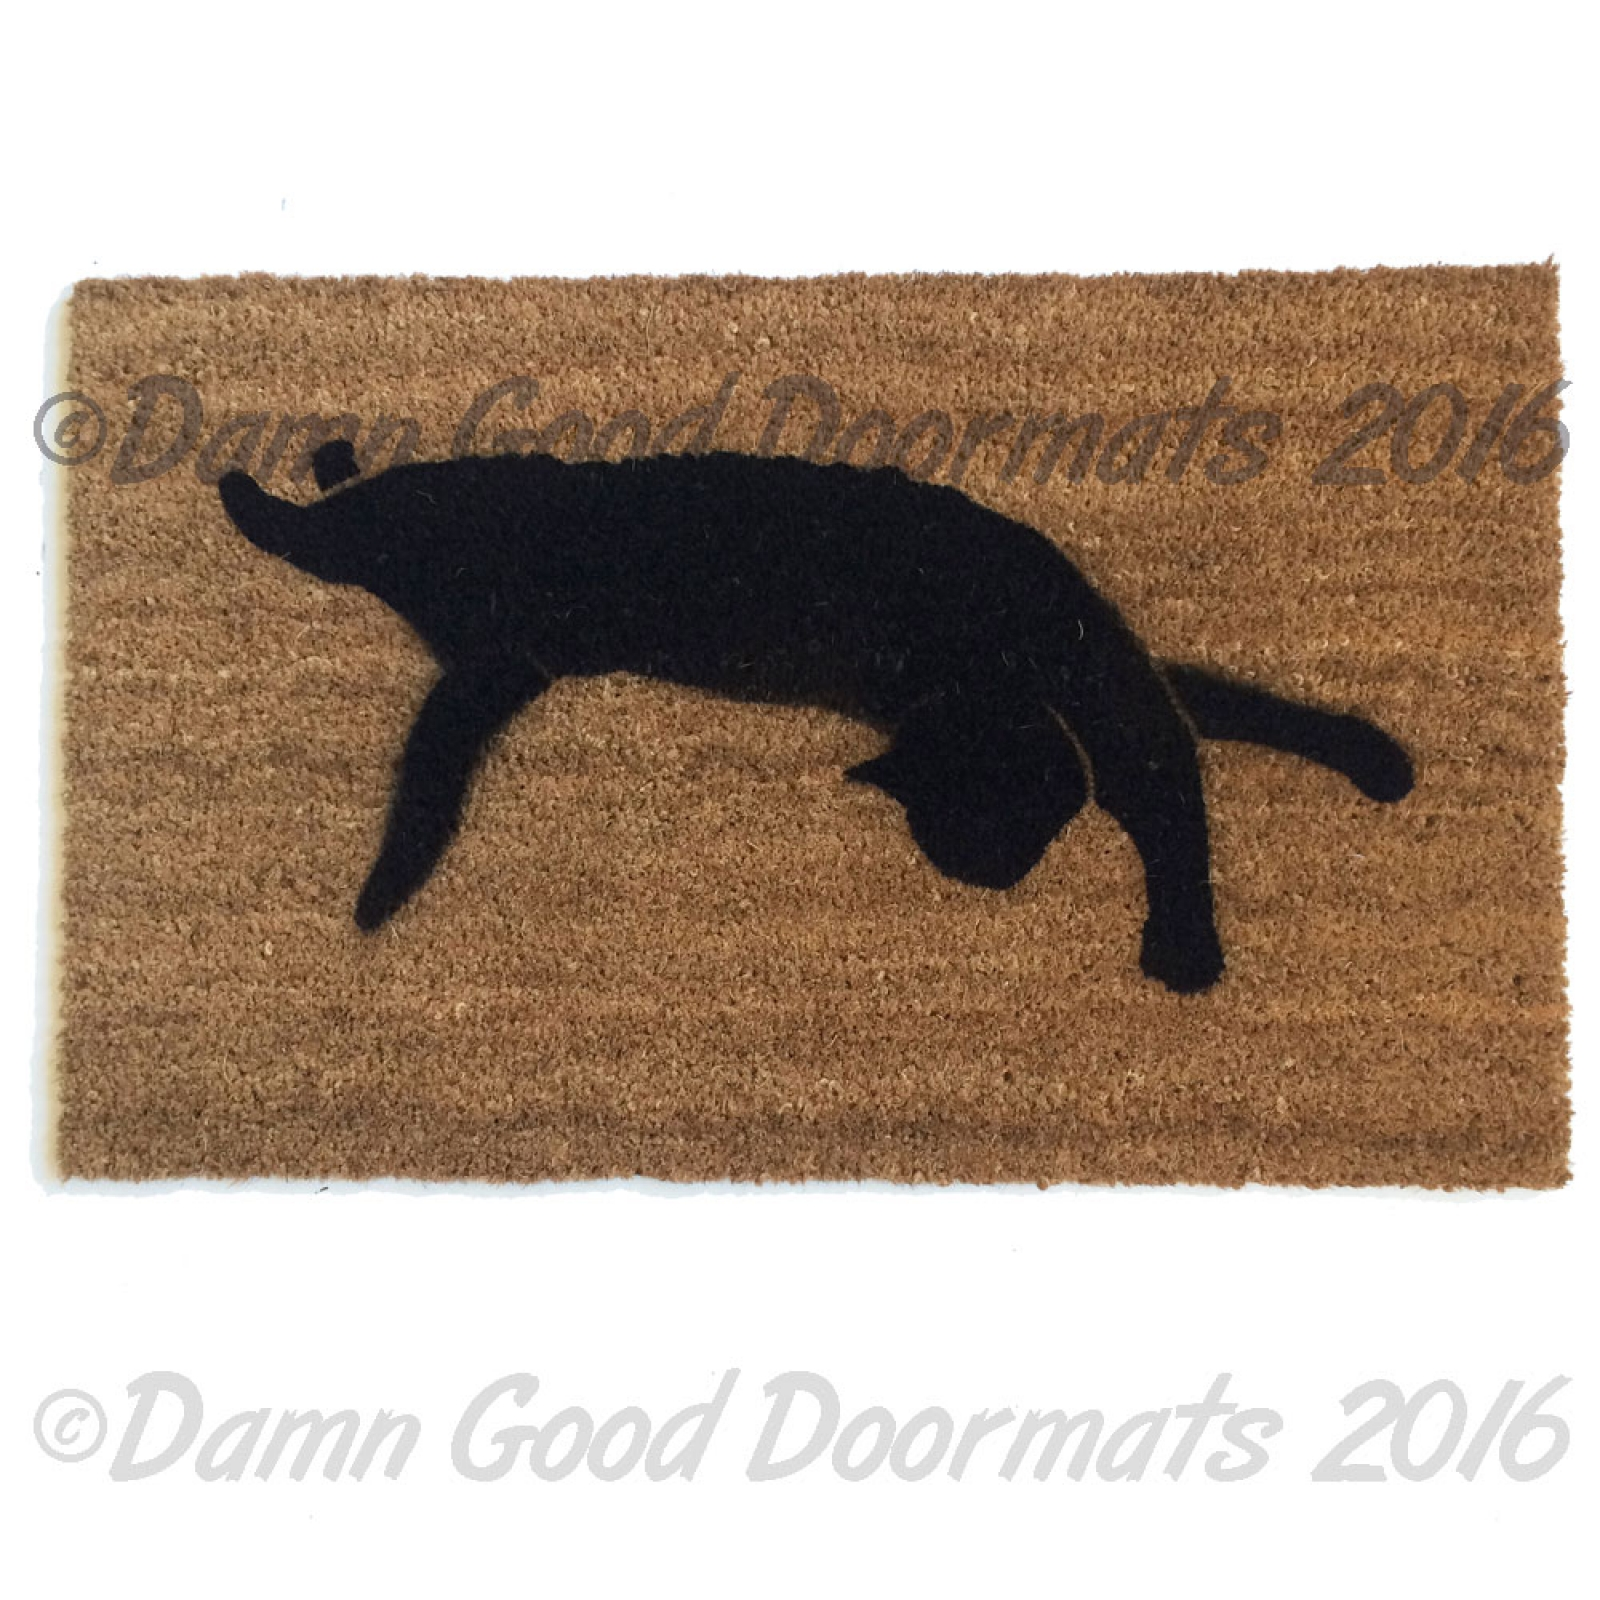 Black cat silhouette Halloween doormat  sc 1 st  Damn Good Doormats & Black cat silhouette Halloween doormat | Damn Good Doormats